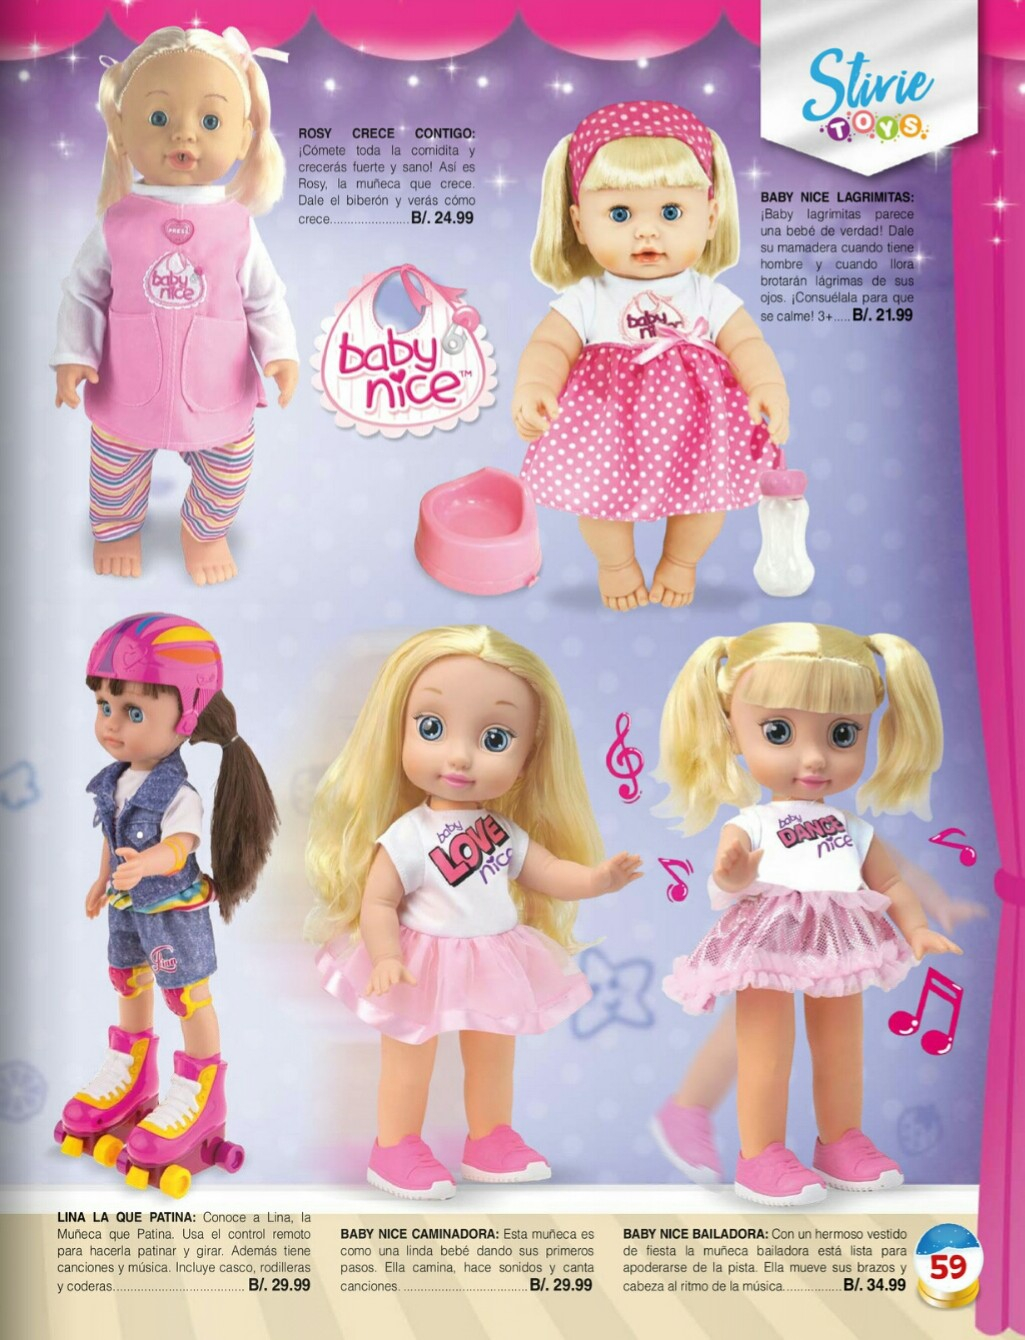 Catalogo juguetes Stivie toys 2018 p59